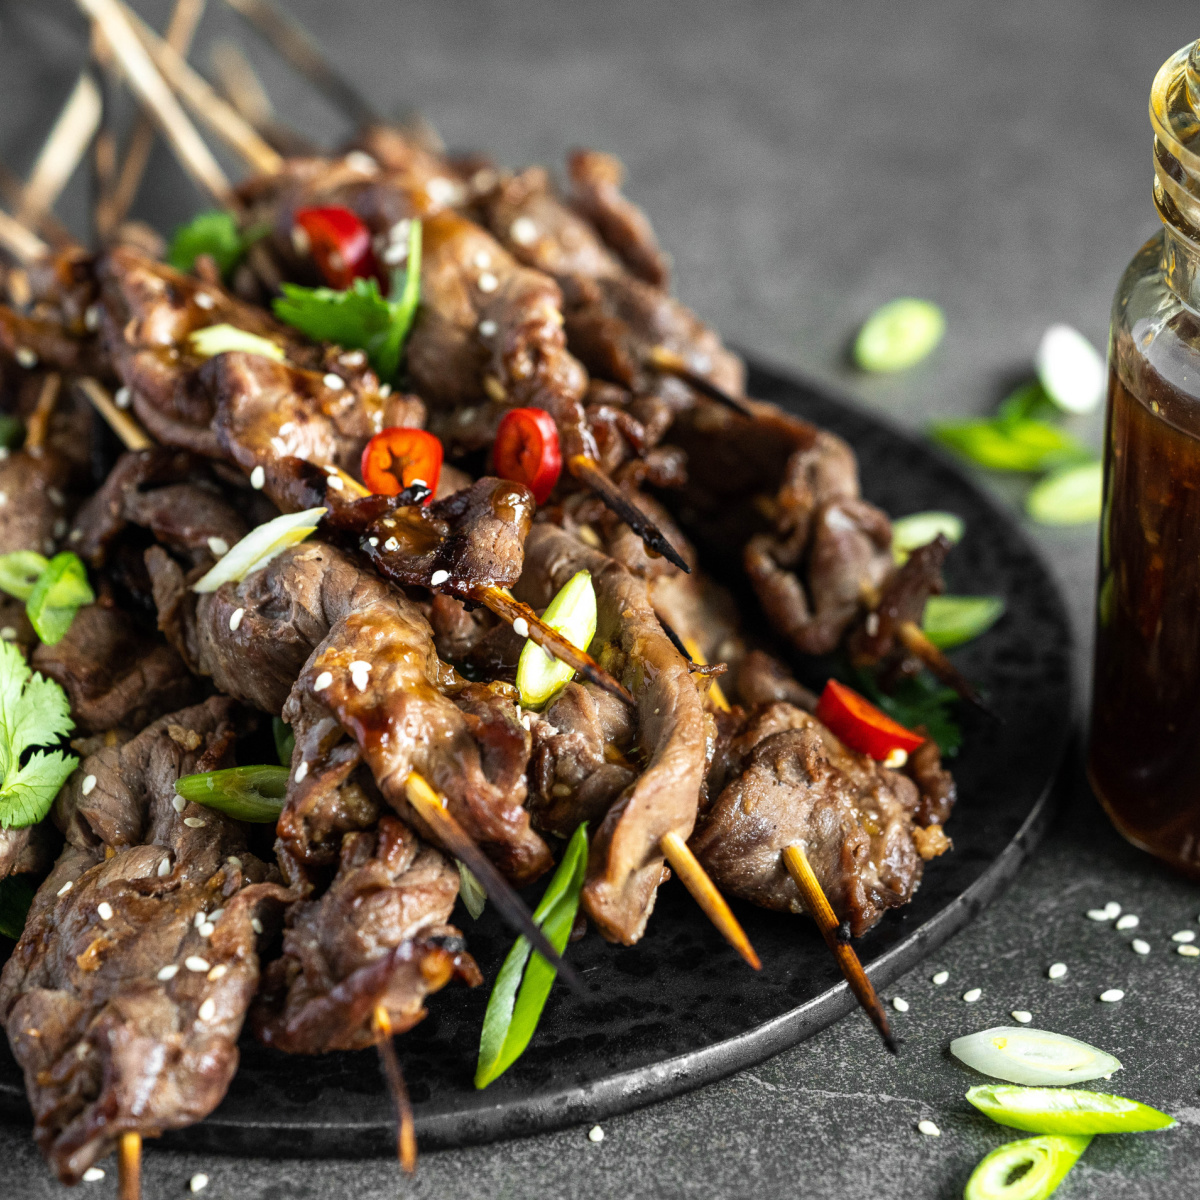 Grilled Beef Teriyaki Skewers on a black plate with sliced green onions and red chili pepper on top.